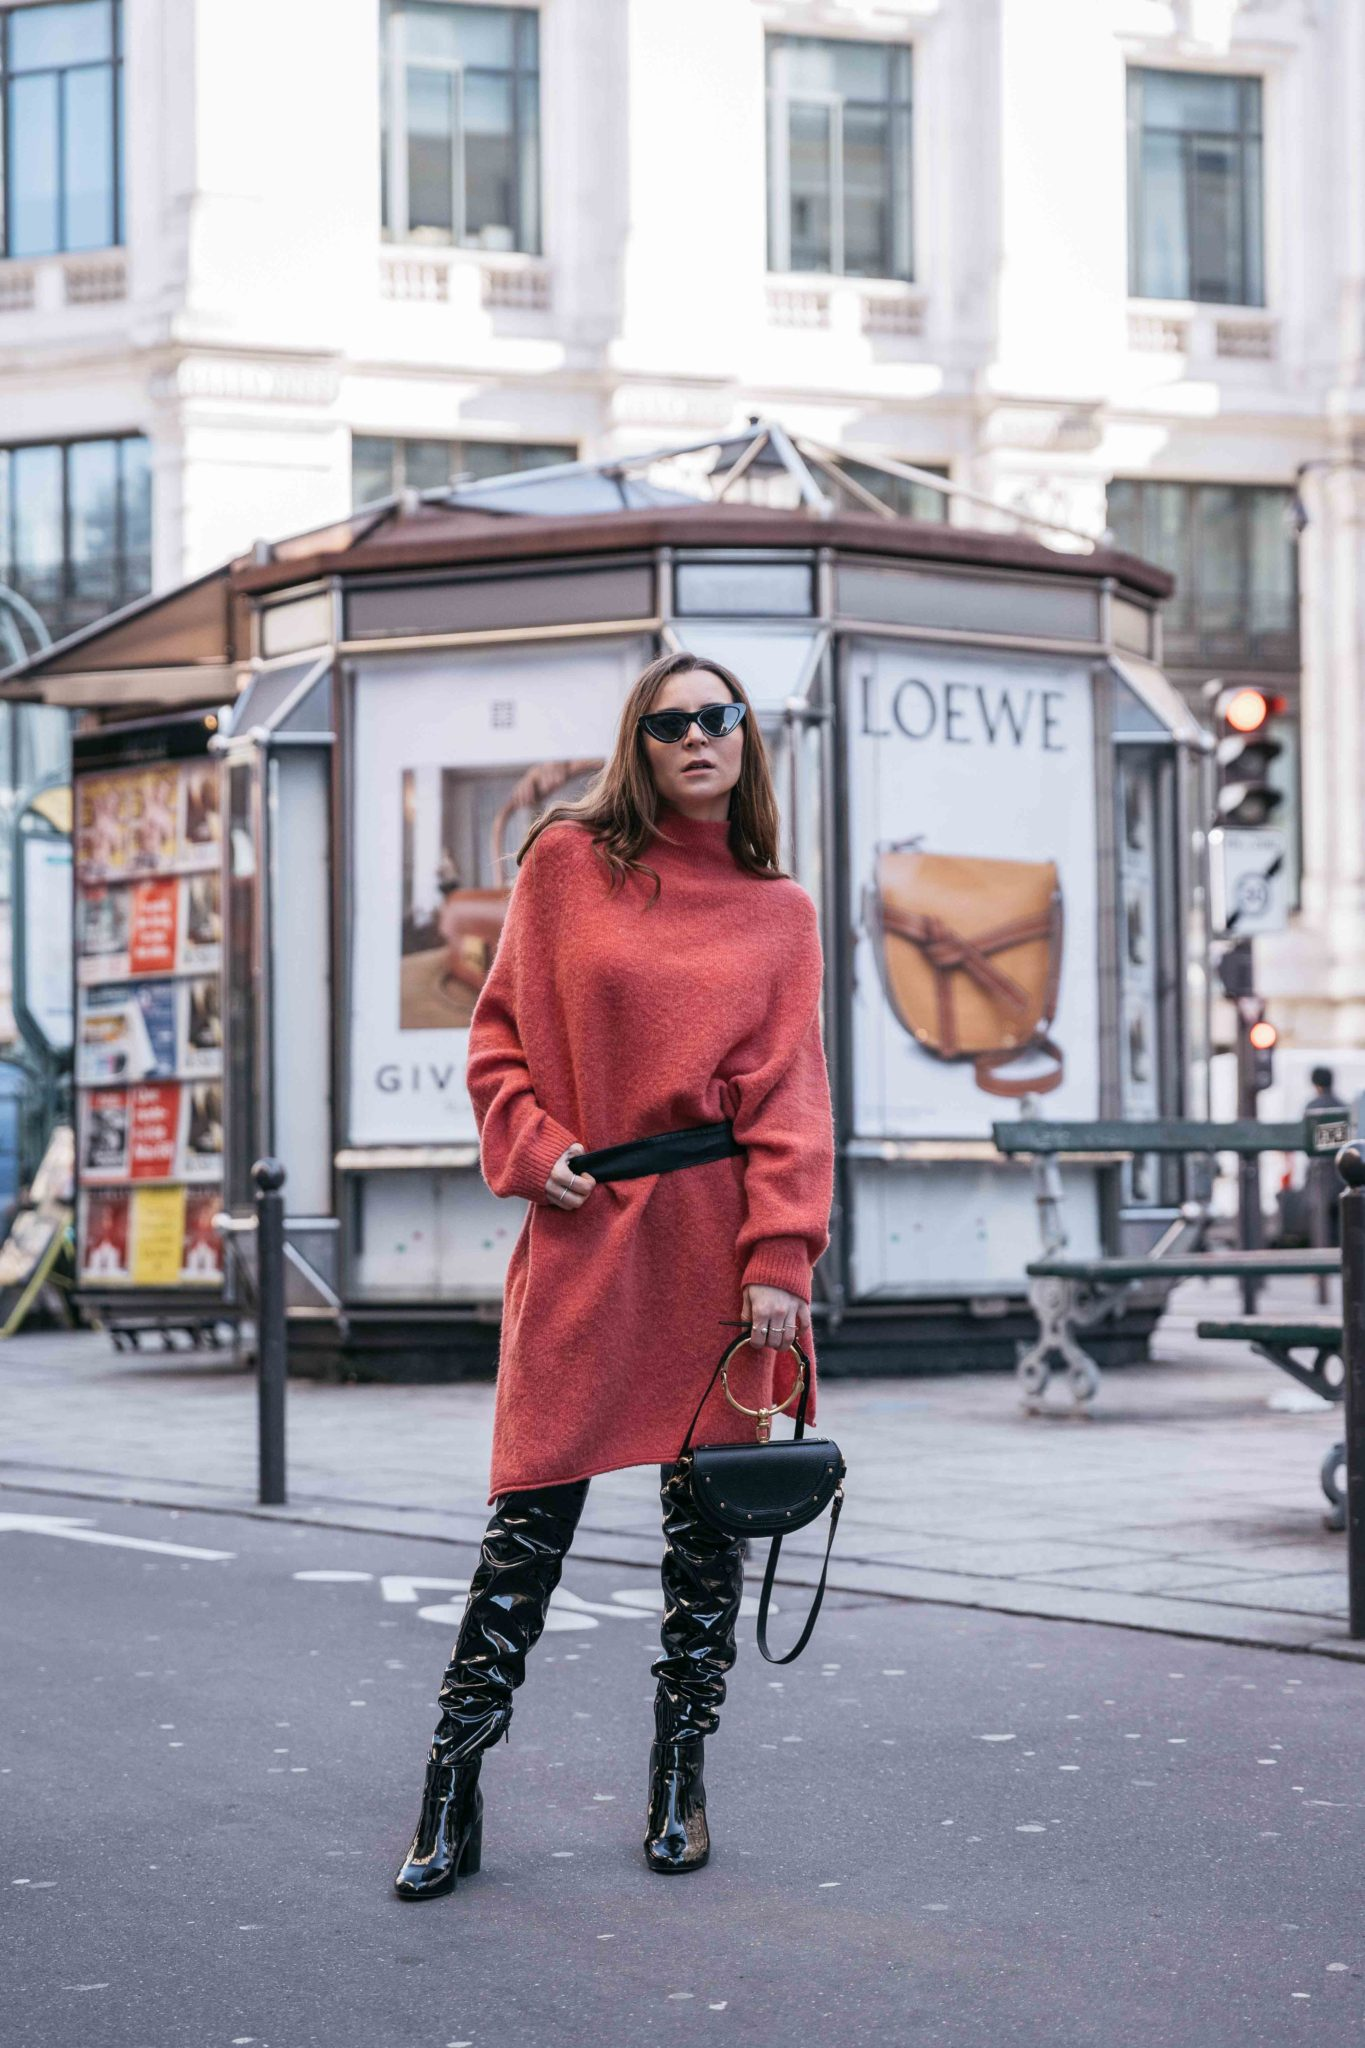 Best Street Style Paris Fashion Week Mars 2018 of Julia Comil / French Fashion Blogger in Los Angeles - Outfit for Ingie Paris Paris Fall Winter 2018 2019 show - Suistudio Mint Teddy Coat -Orange sweater dress by American Vintage - Patent Over The Knee Boots